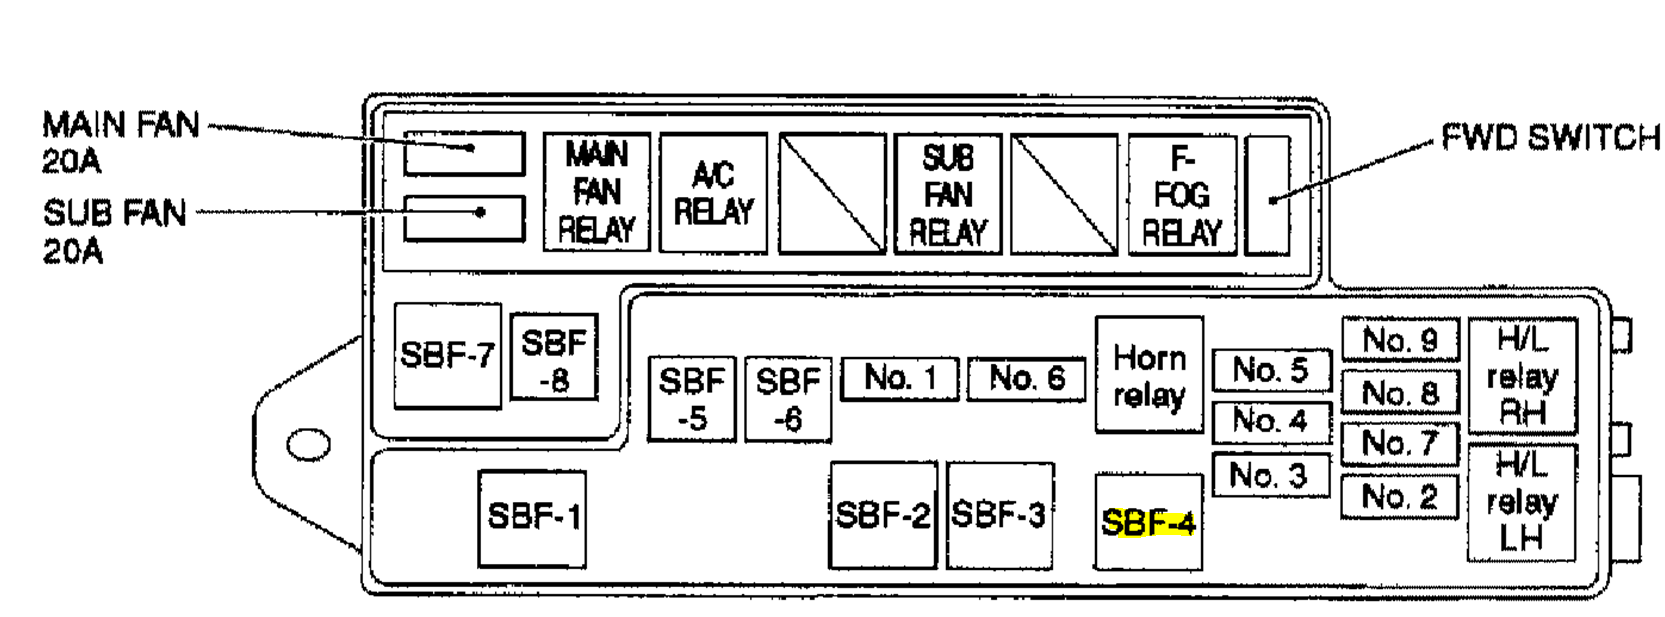 Subaru Forester Fuse Box Diagram